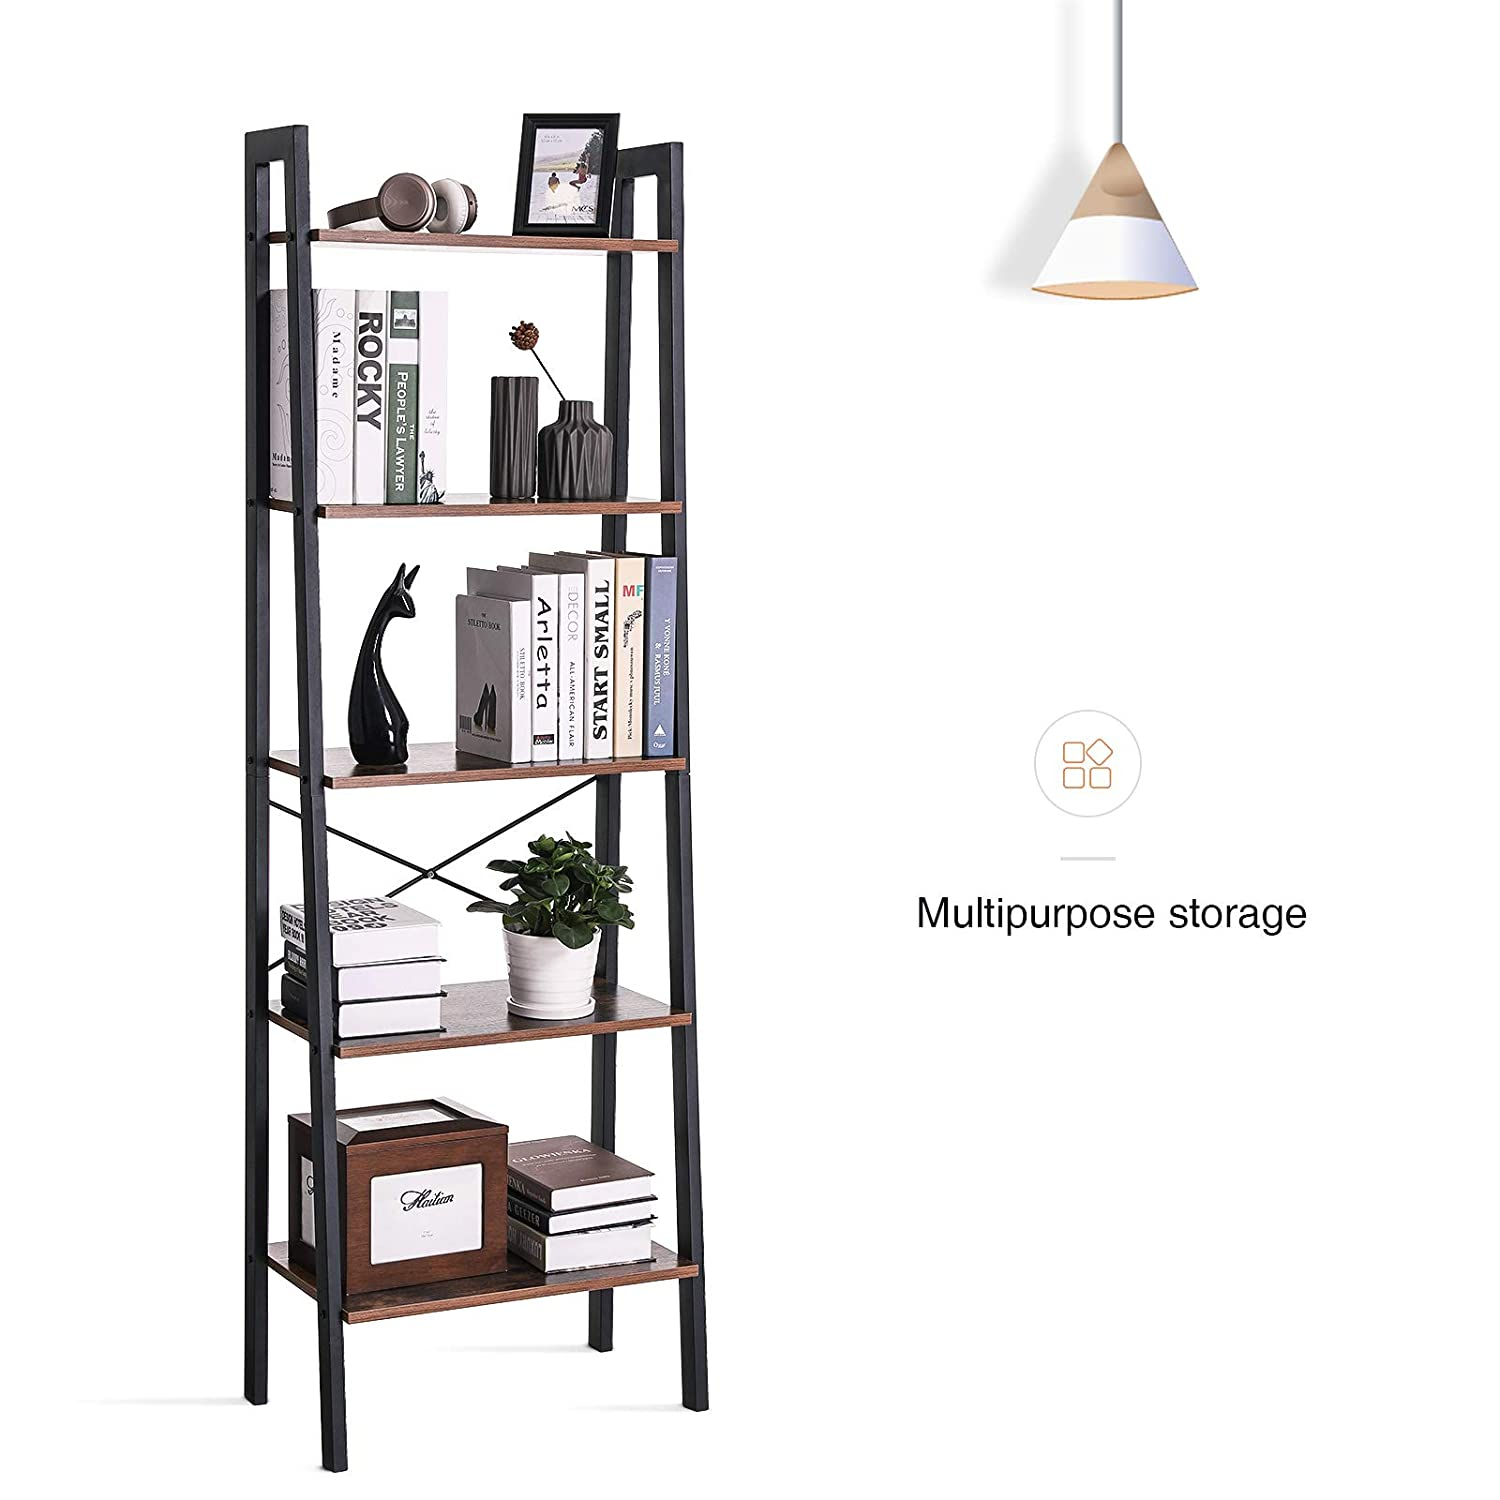 VASAGLE Industrial Ladder Shelf 5-Tier Bookshelf Bookcase and Storage Rack for Home Office Wood Look Accent Furniture with Metal Frame Rustic Brown ULLS45X